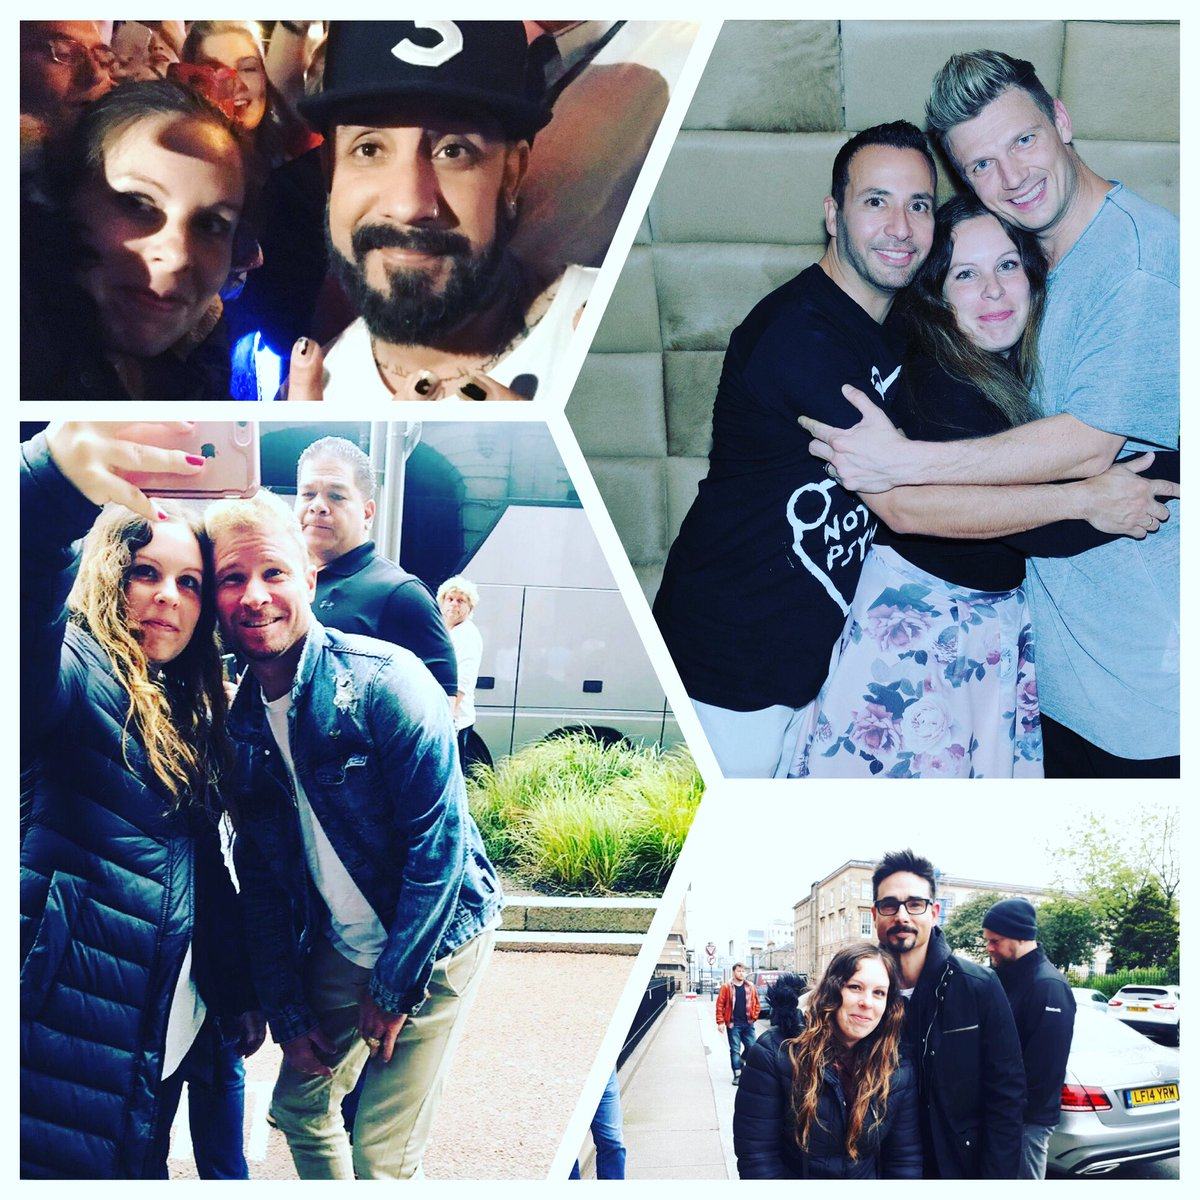 Today is my BIRTHDAY ❤️🥳🥳🥳 can I have a backstreet birthday wish 🙏? @aj_mclean  @howied @brian_littrell @kevinrichardson @nickcarter 🥰🥰🥰🥰🥰